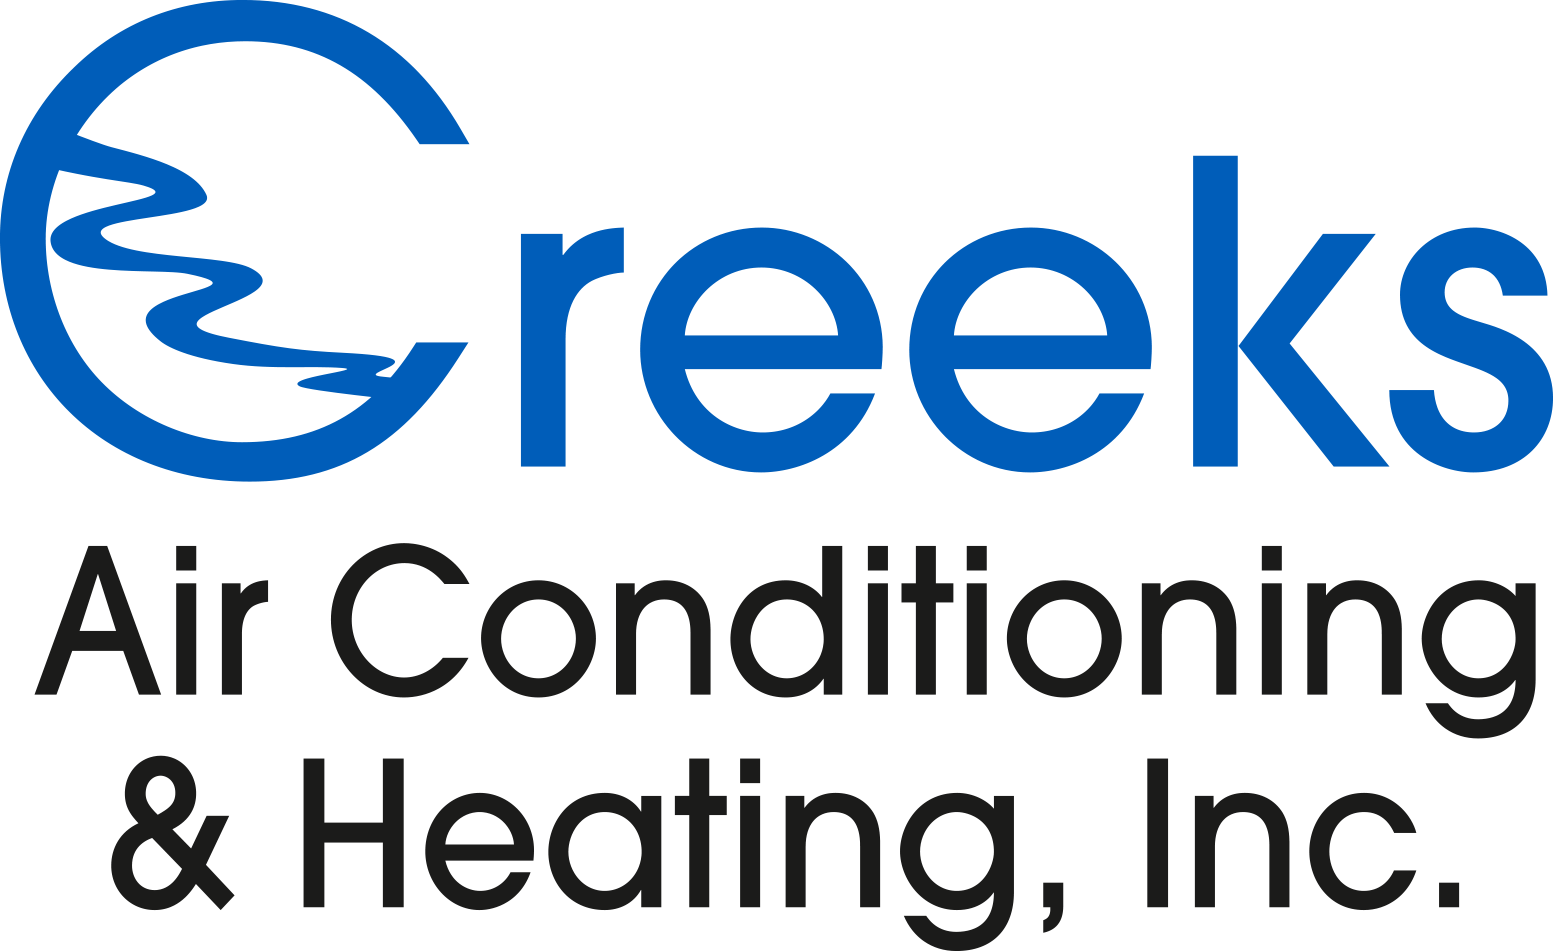 Creeks Air Conditioning & Heating, Inc